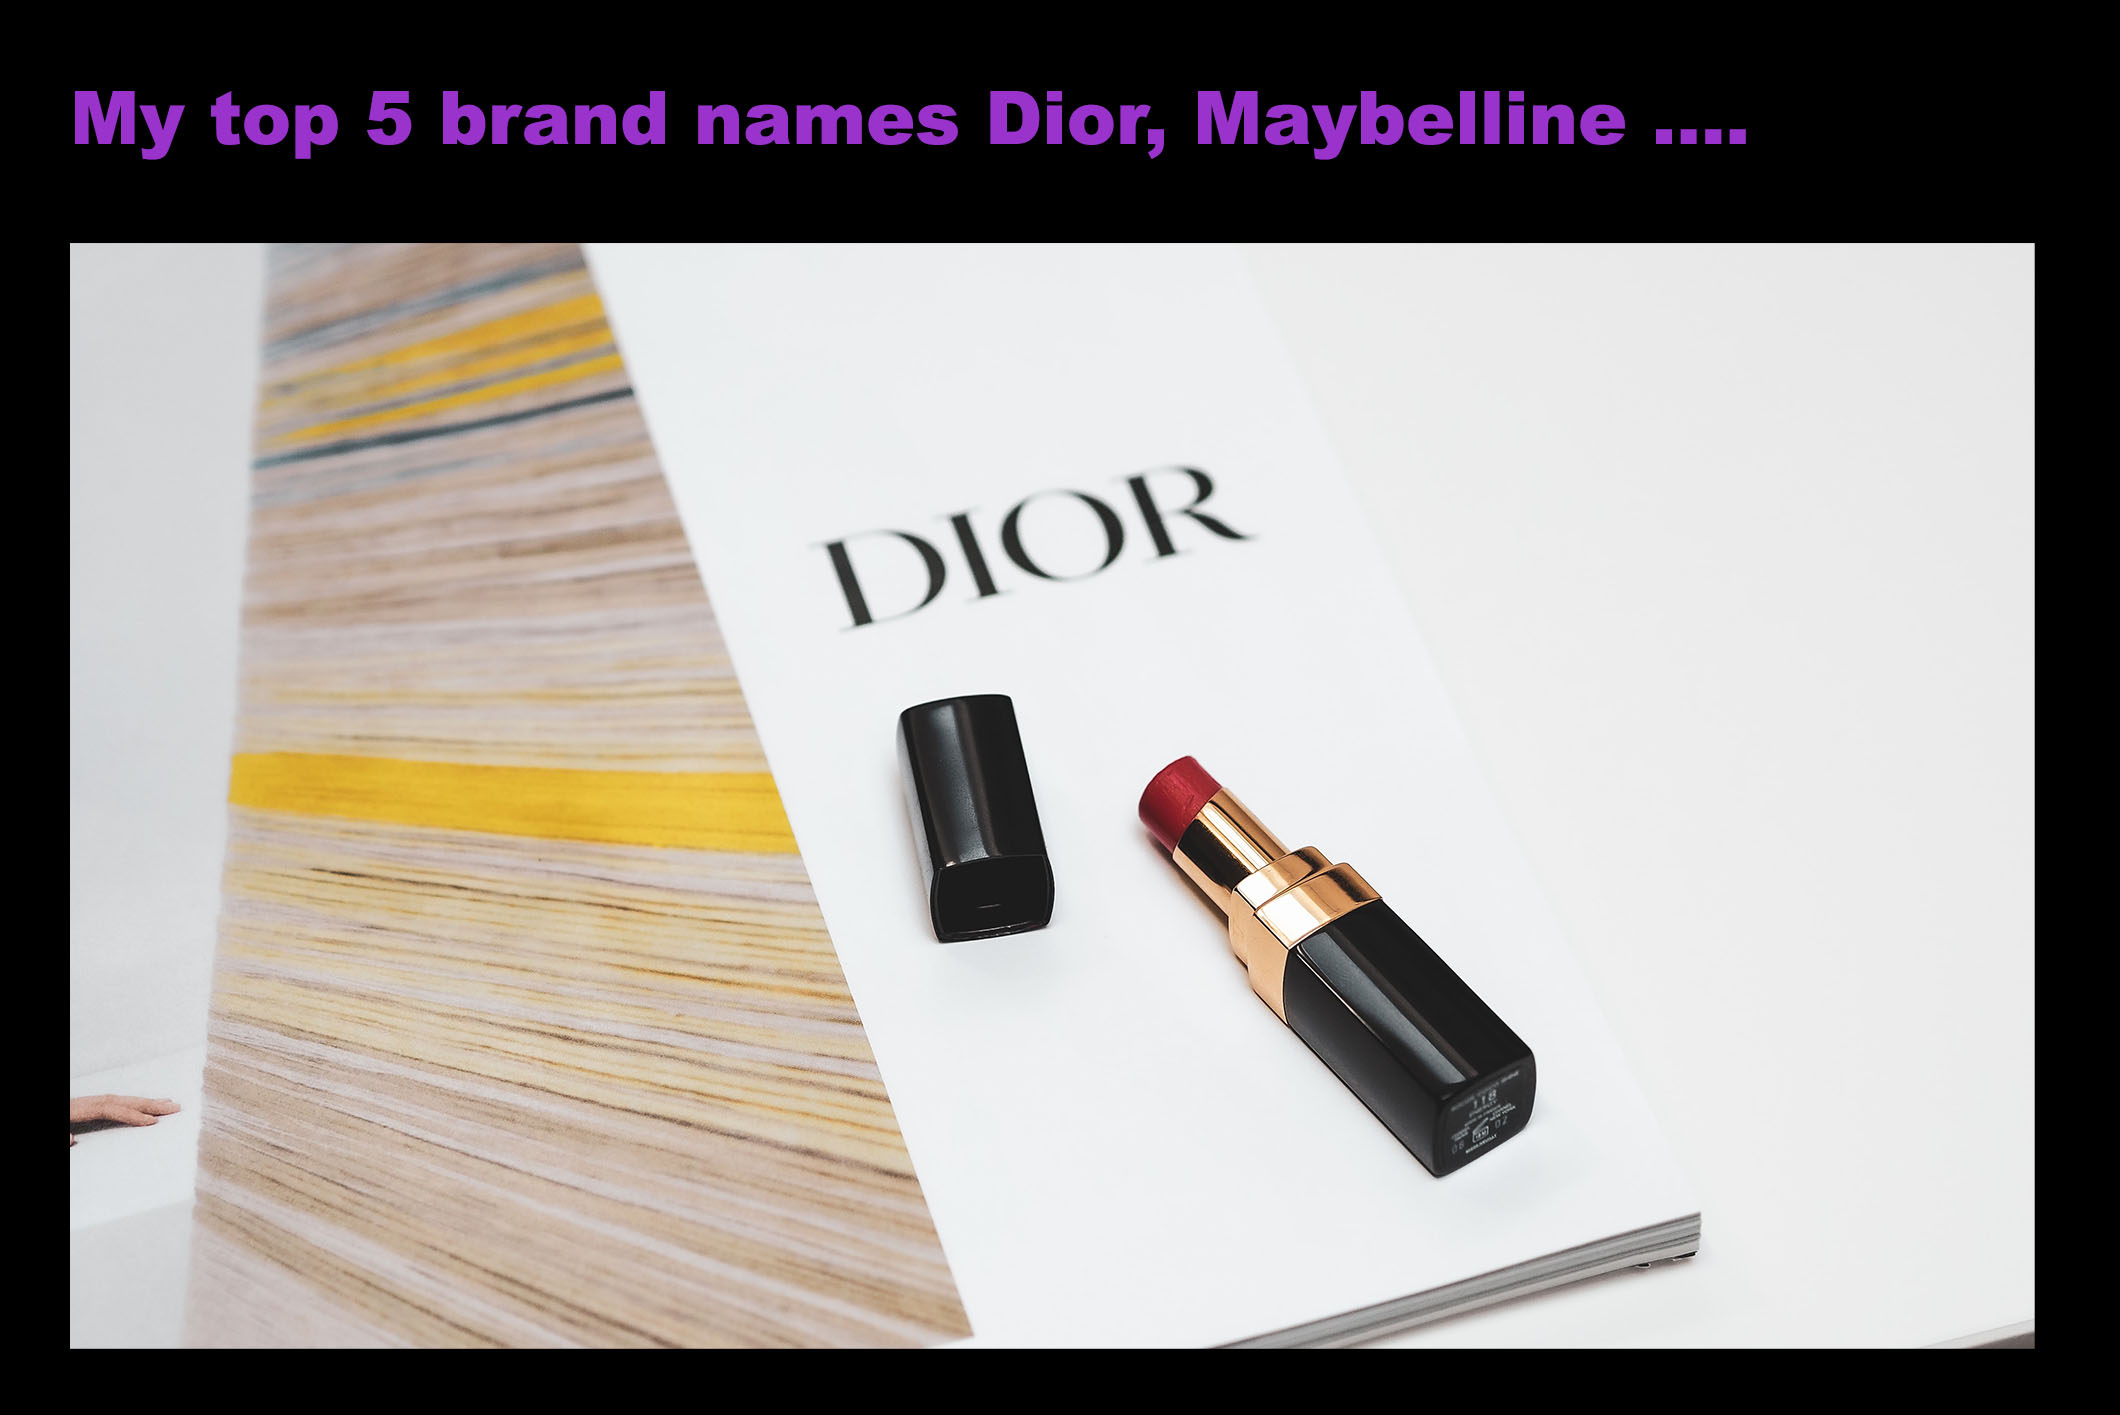 My to 5 brand names Dior etcjpg